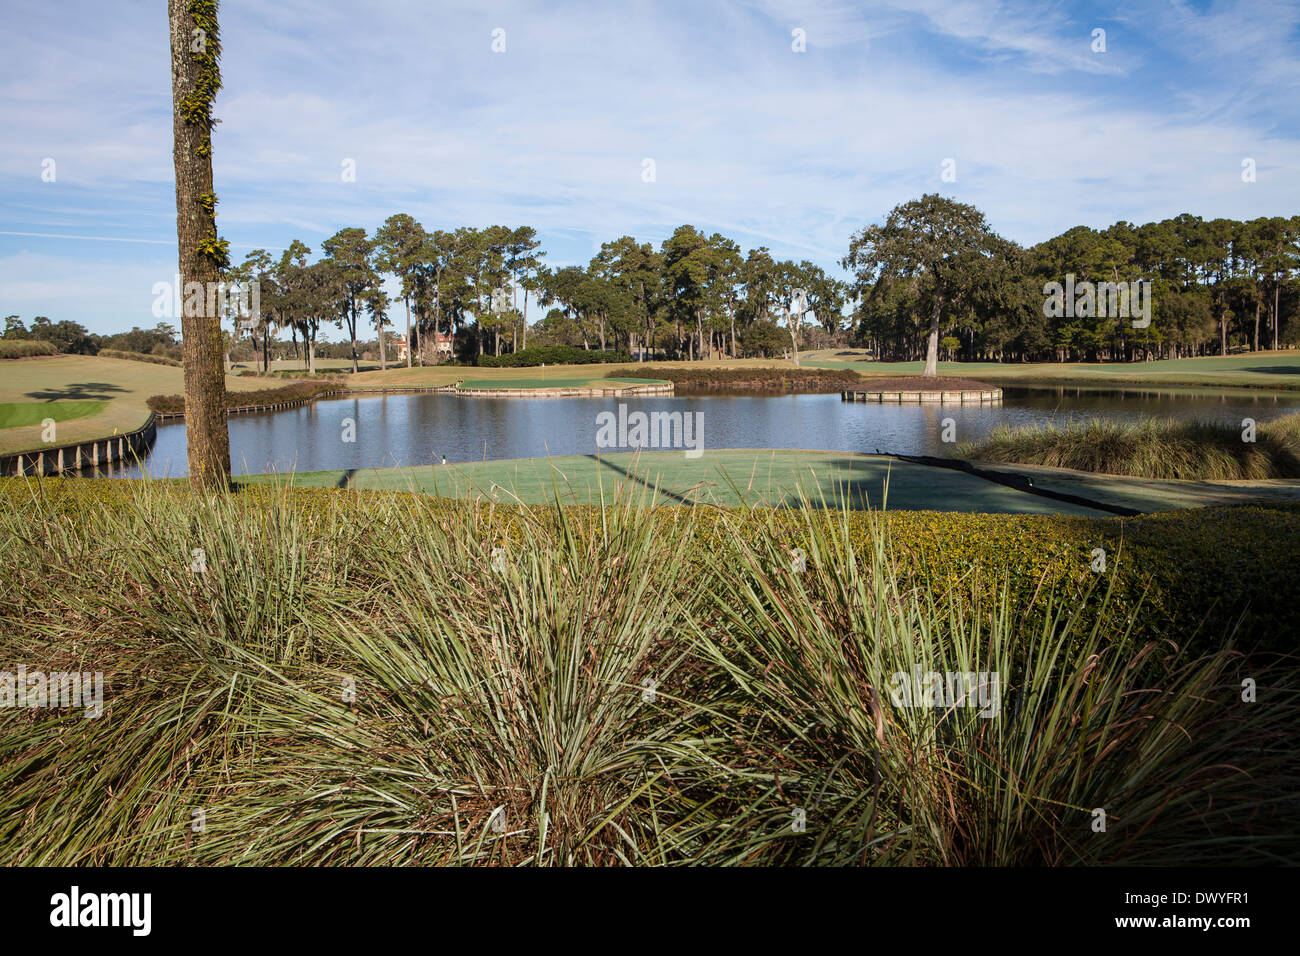 The famous 17th Island Green hole of TOC Sawgrass Stadium course is pictured in Ponte Vedra Beach, Florida - Stock Image